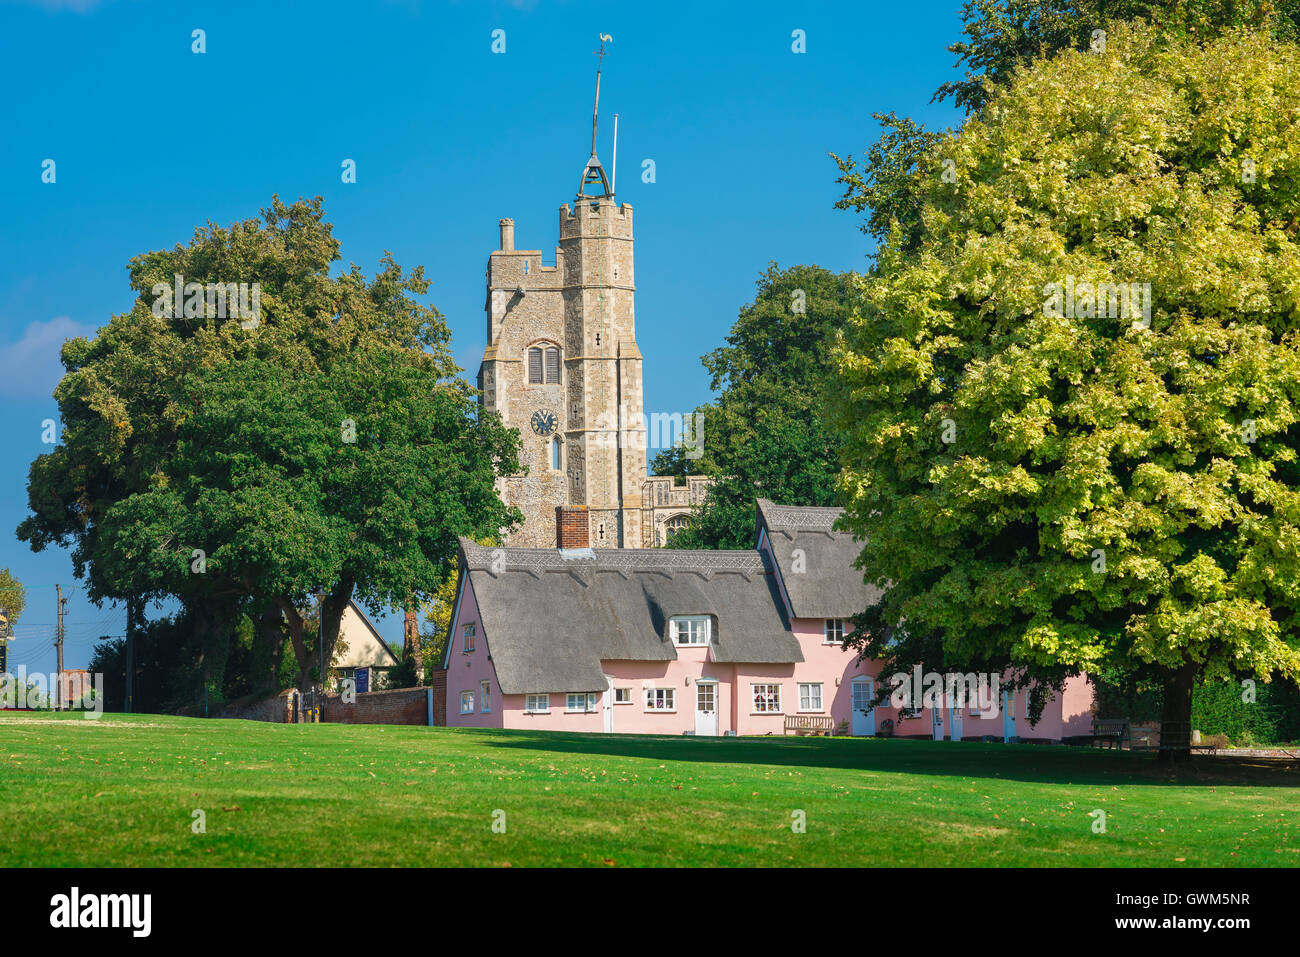 Cavendish Suffolk, village green in Cavendish,Suffolk, with medieval church and row of pink cottages, England, UK - Stock Image